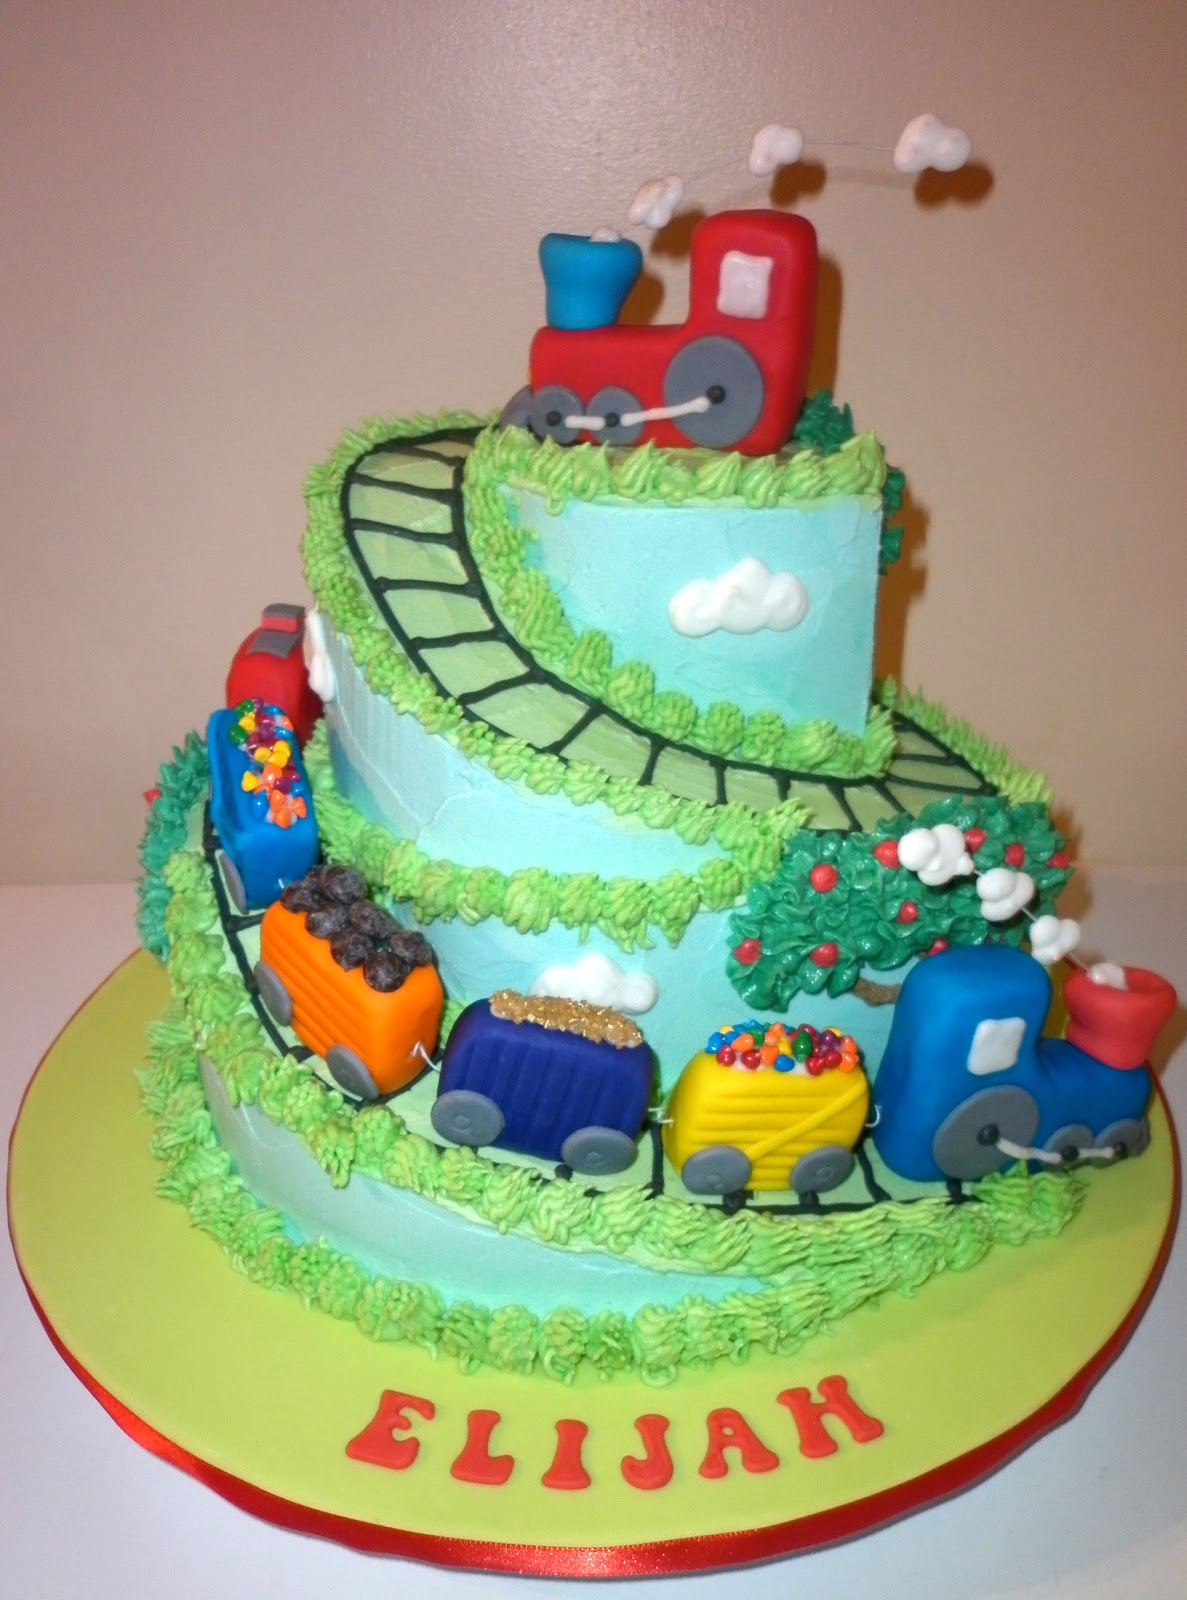 Caketopia Train Cake For Elijah